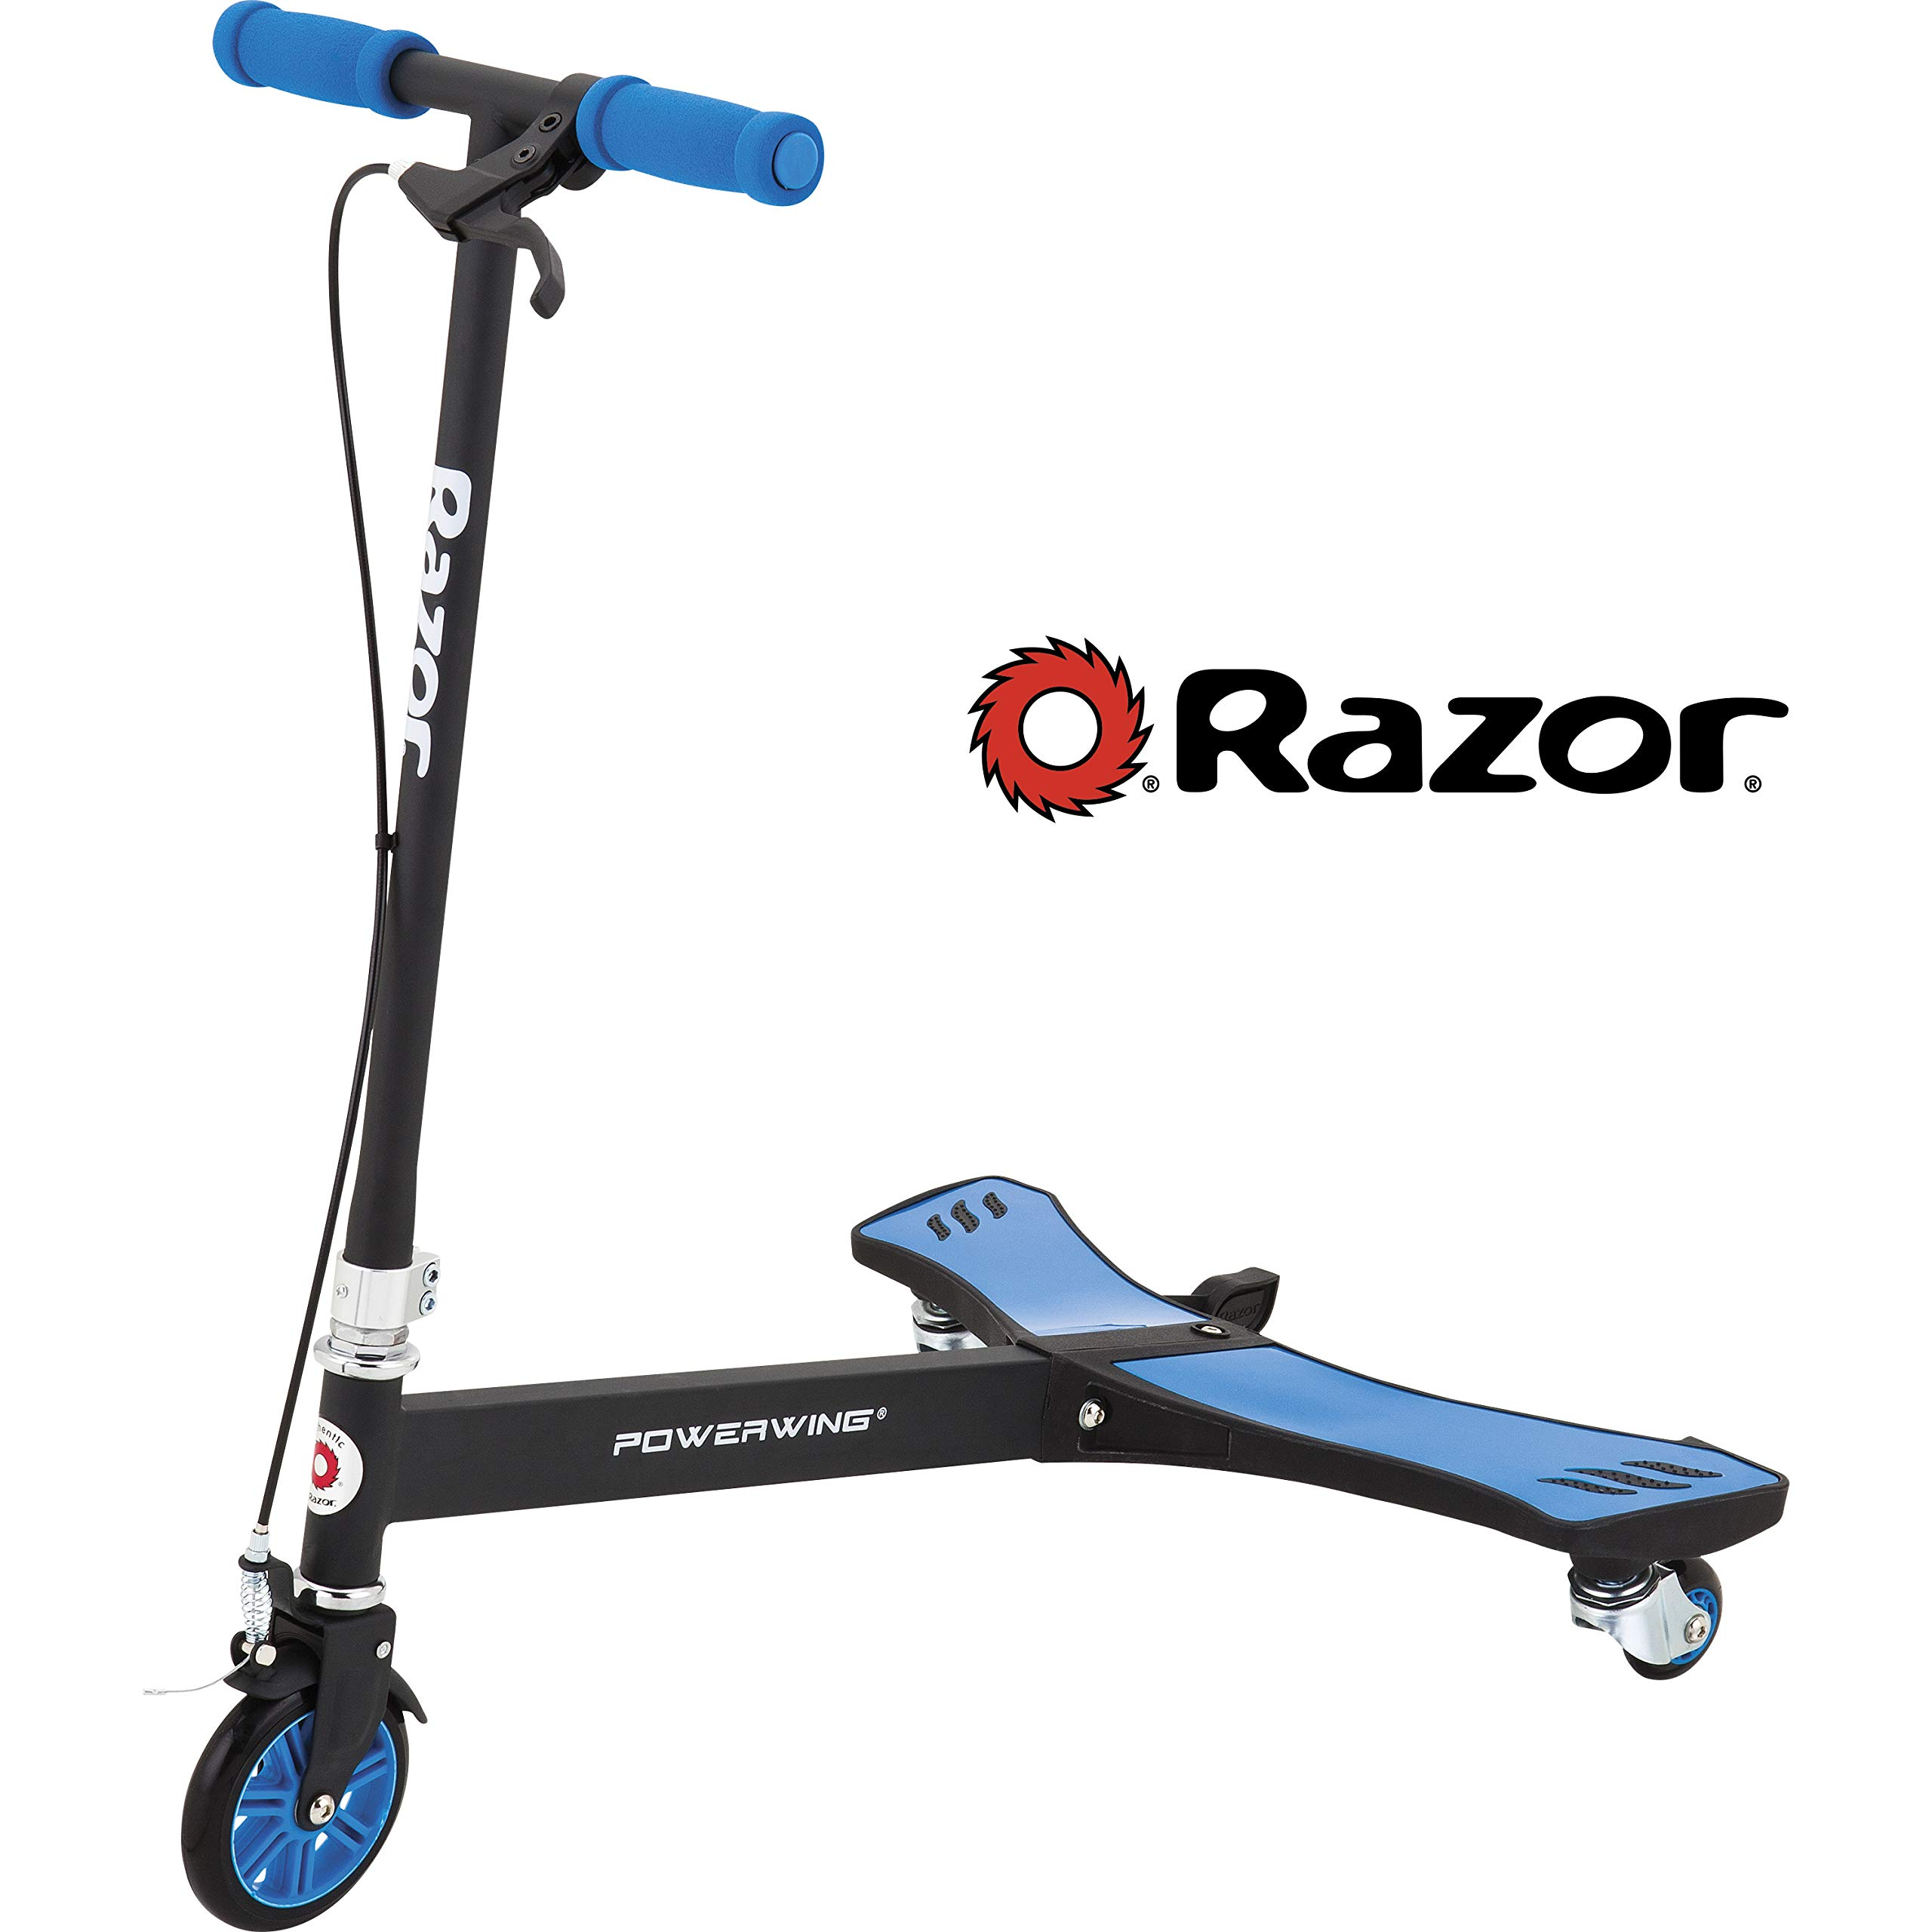 Razor PowerWing Caster Scooter - Blue by Razor